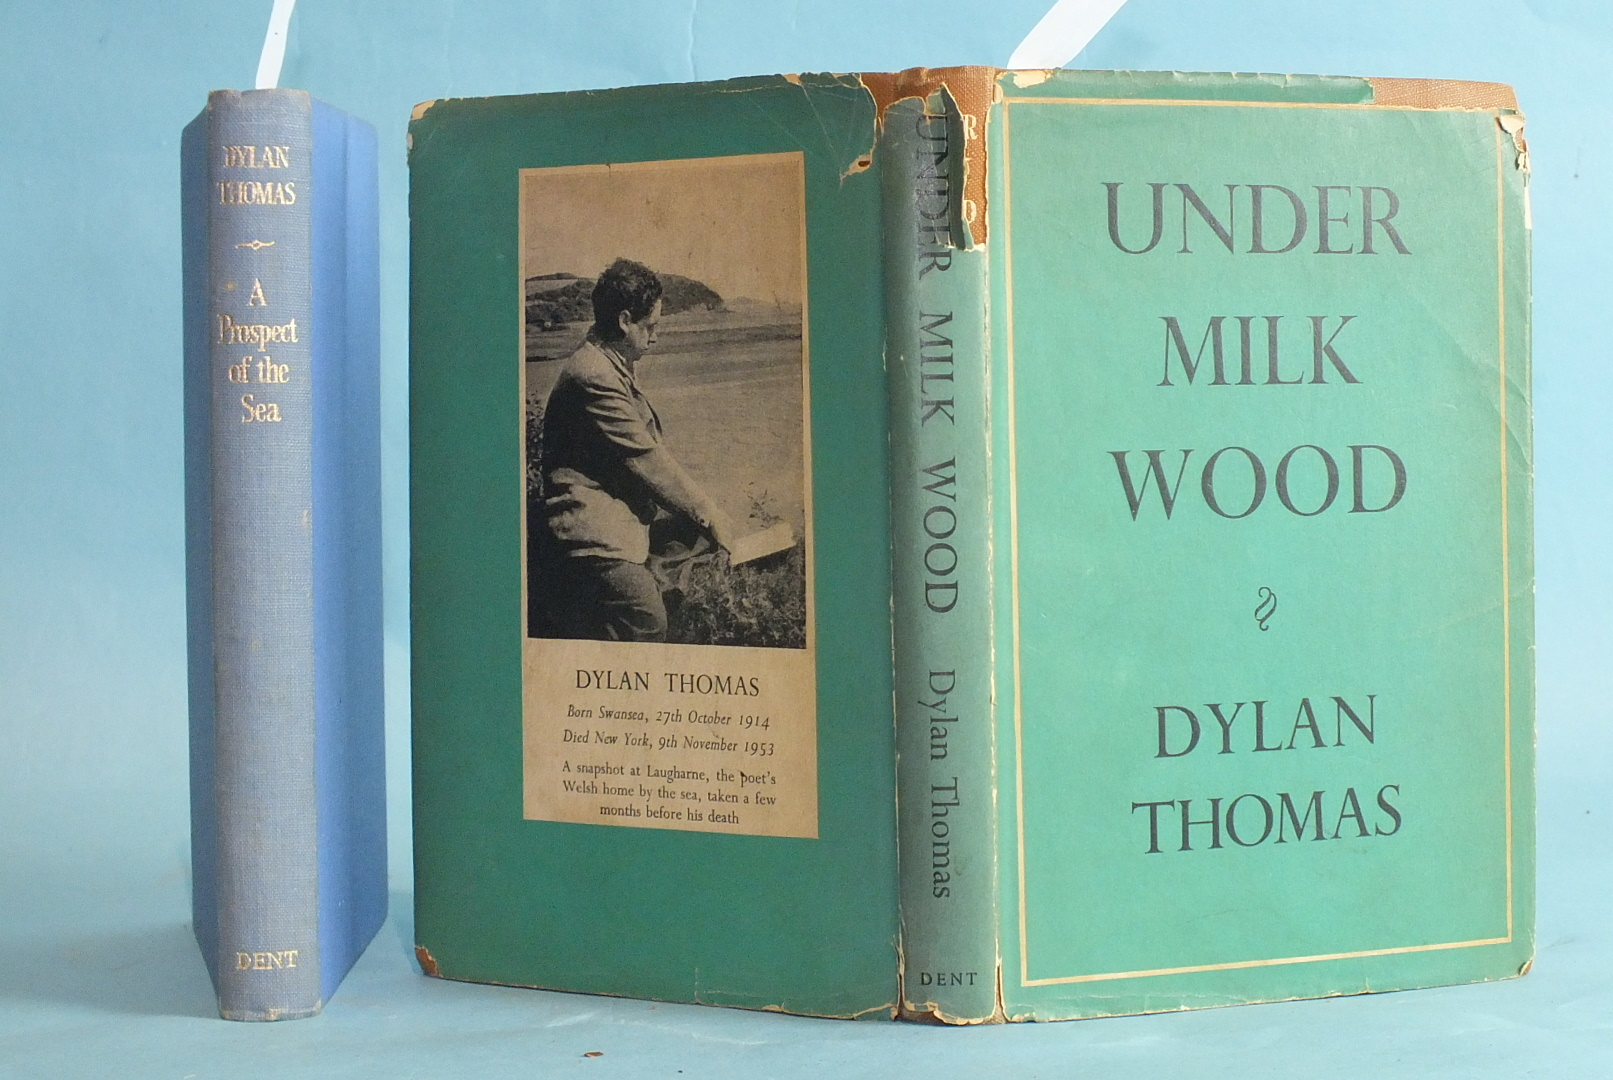 Thomas (Dylan), Under Milk Wood, 1st Edn, dwrp, (slightly torn, some loss), cl gt, 8vo, Dent 1954; A